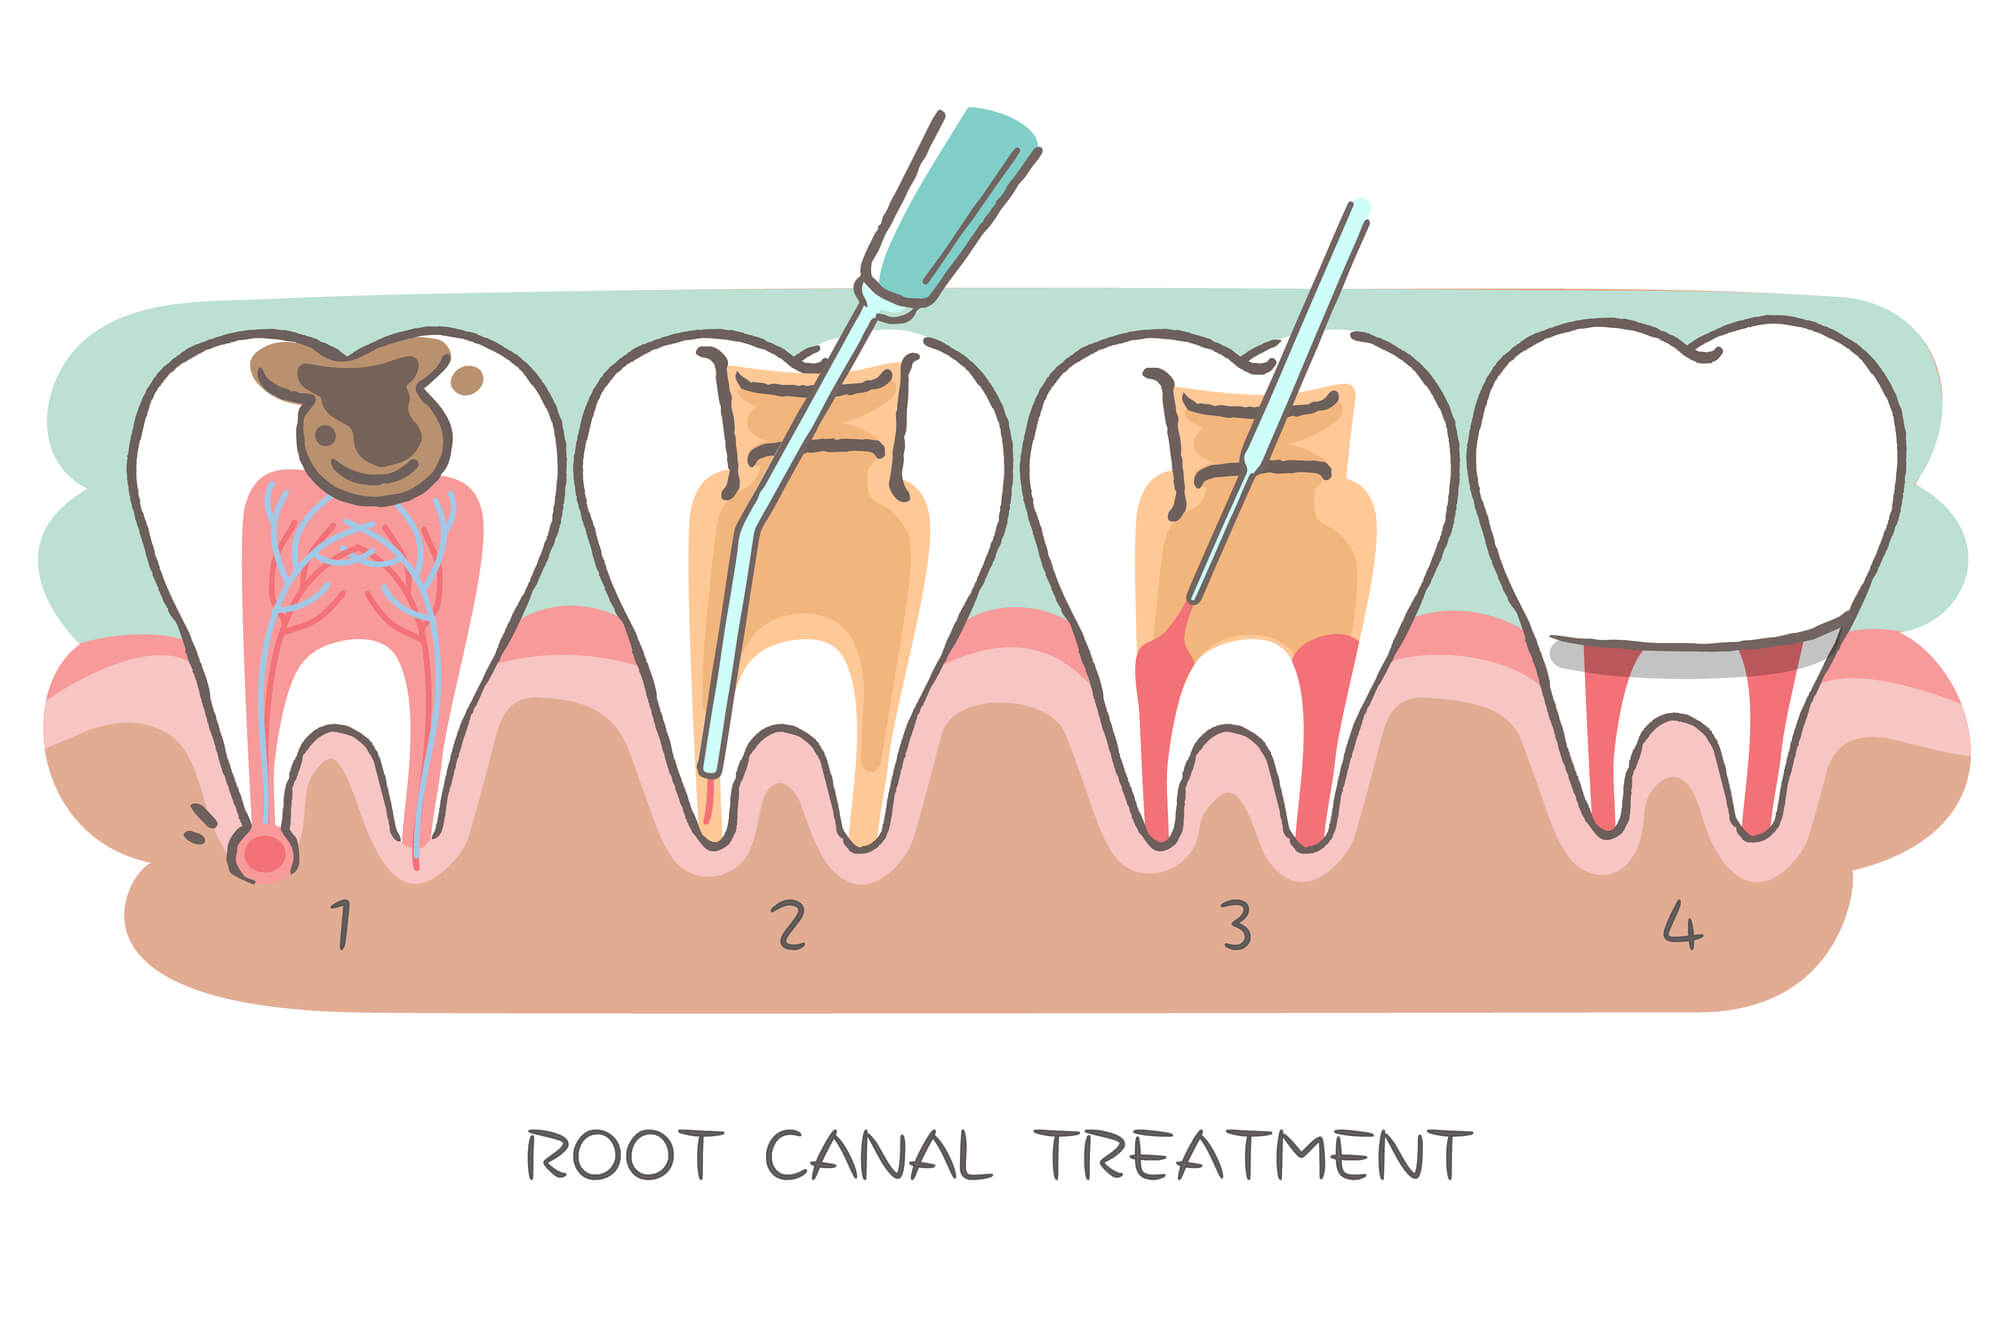 Where can I get a Root canal 98115?